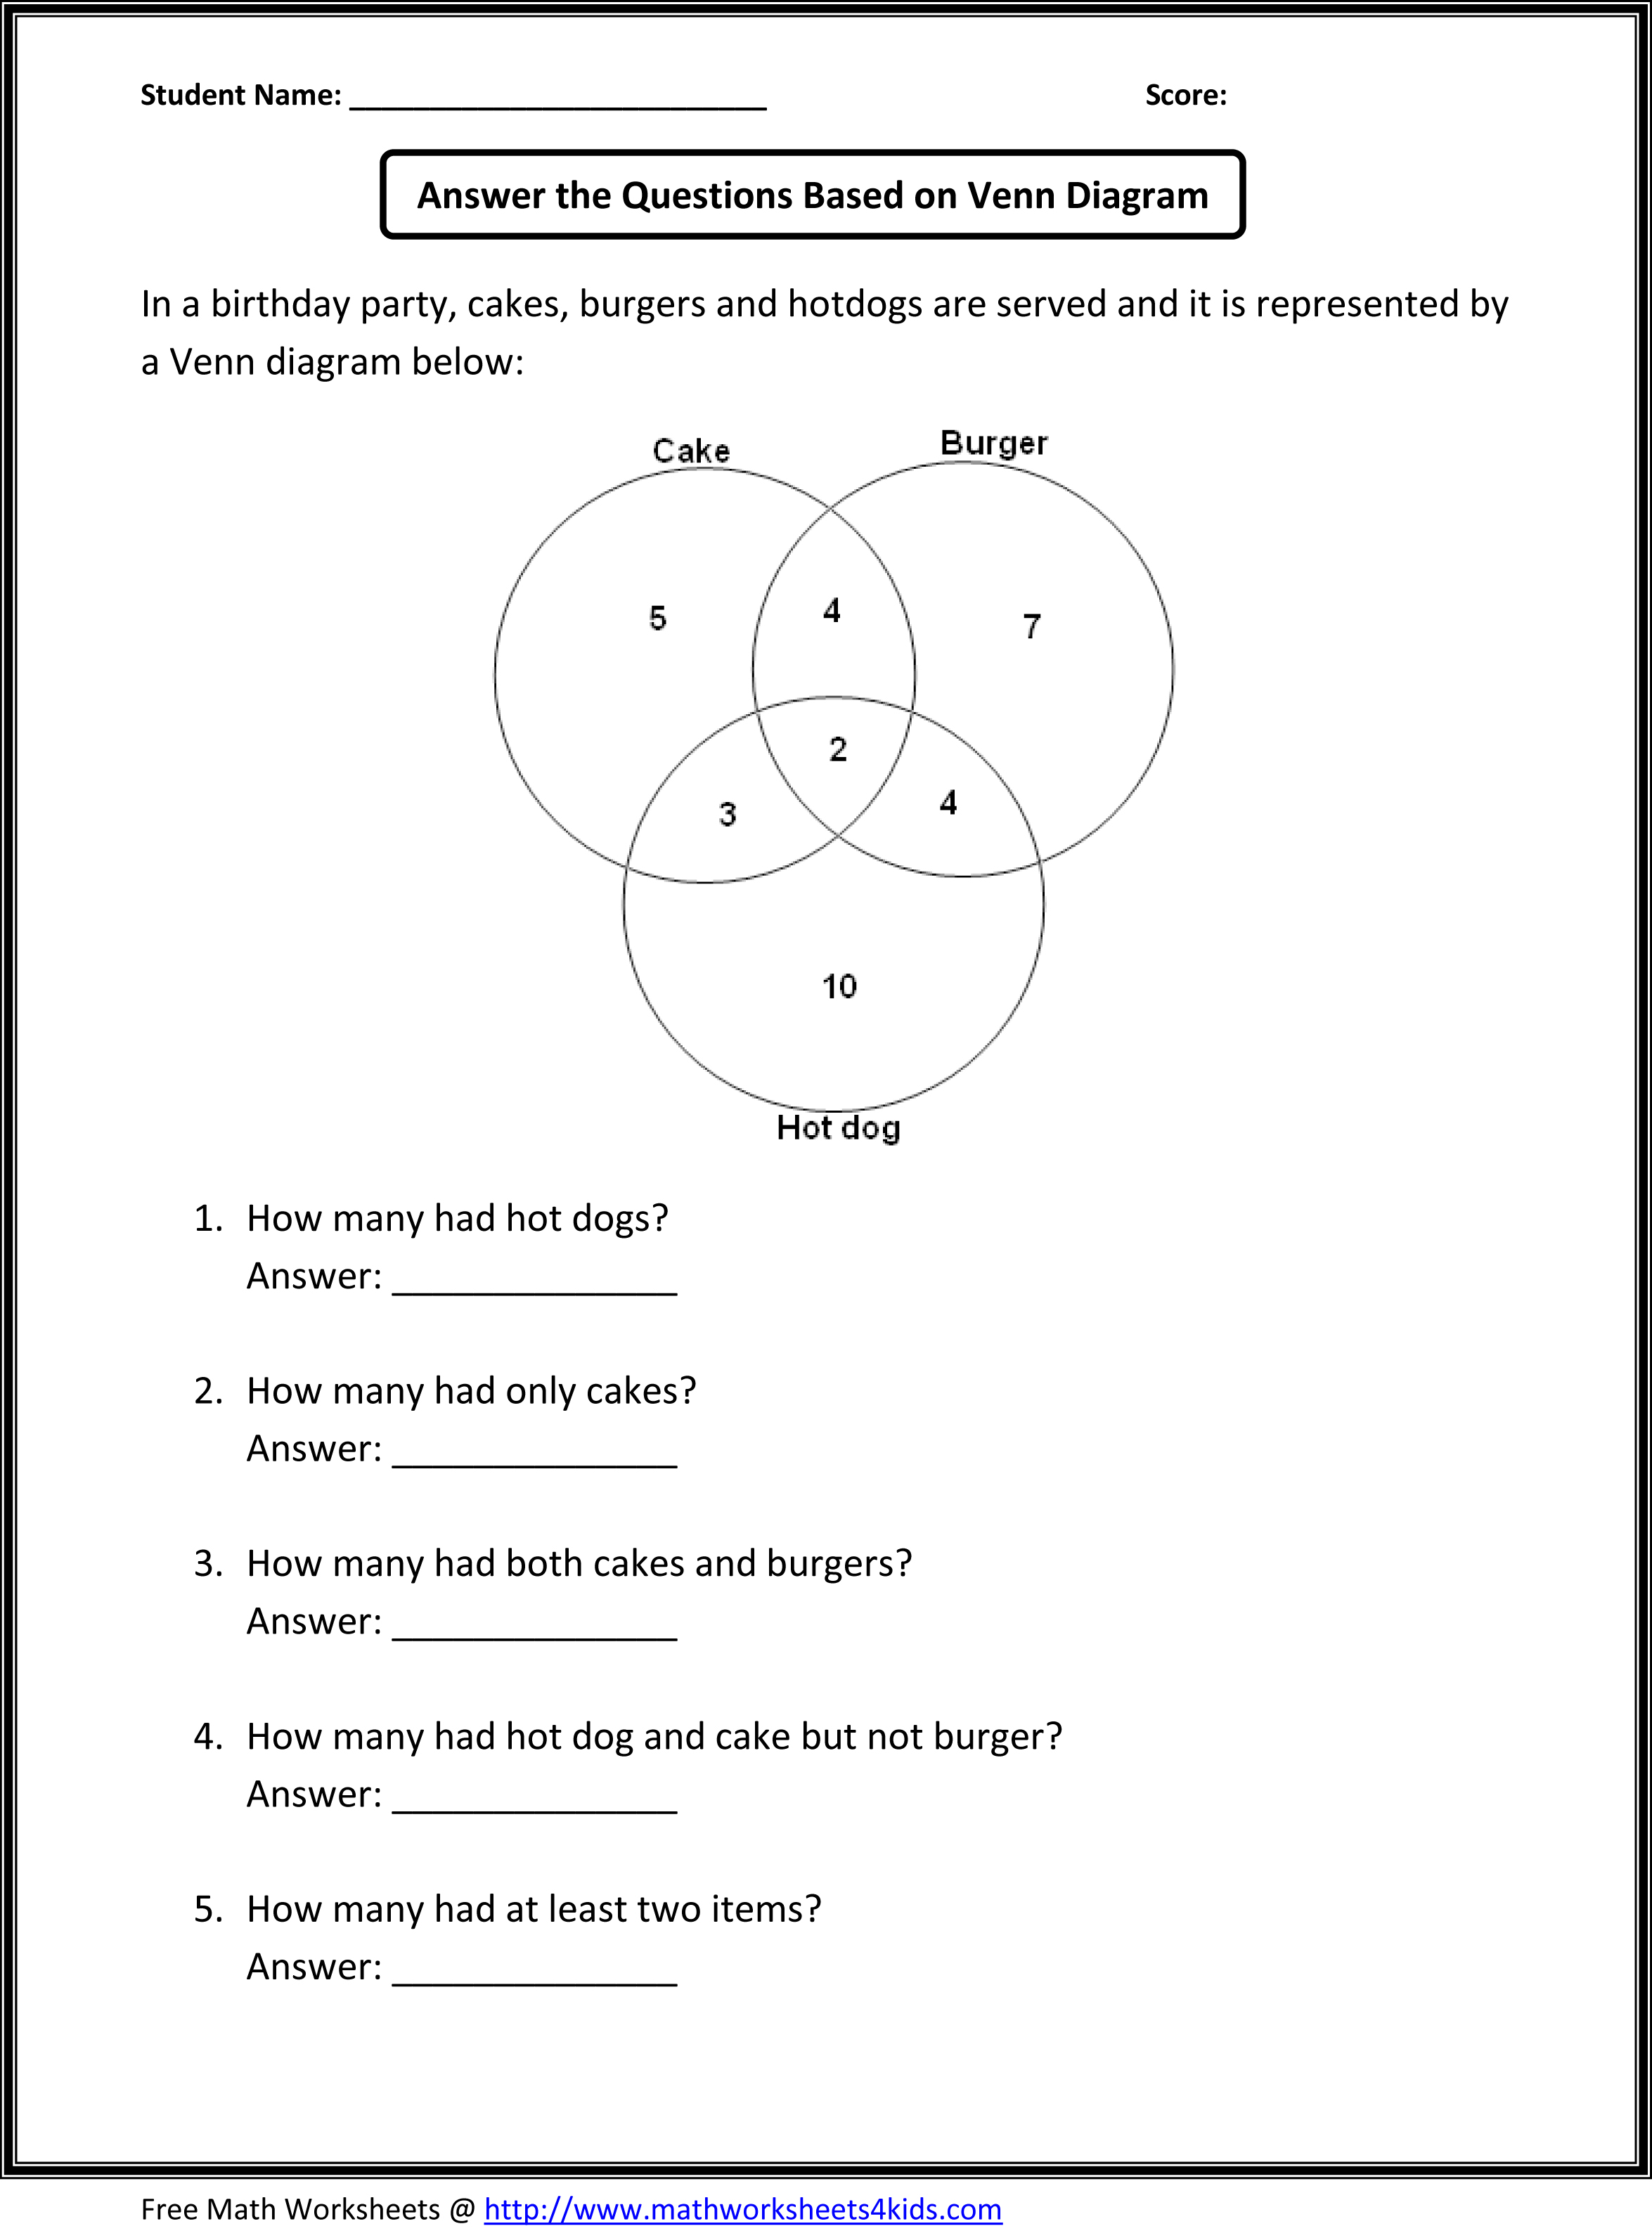 venn diagram word problems with 3 circles vdo digital tachograph wiring fifth grade math worksheets